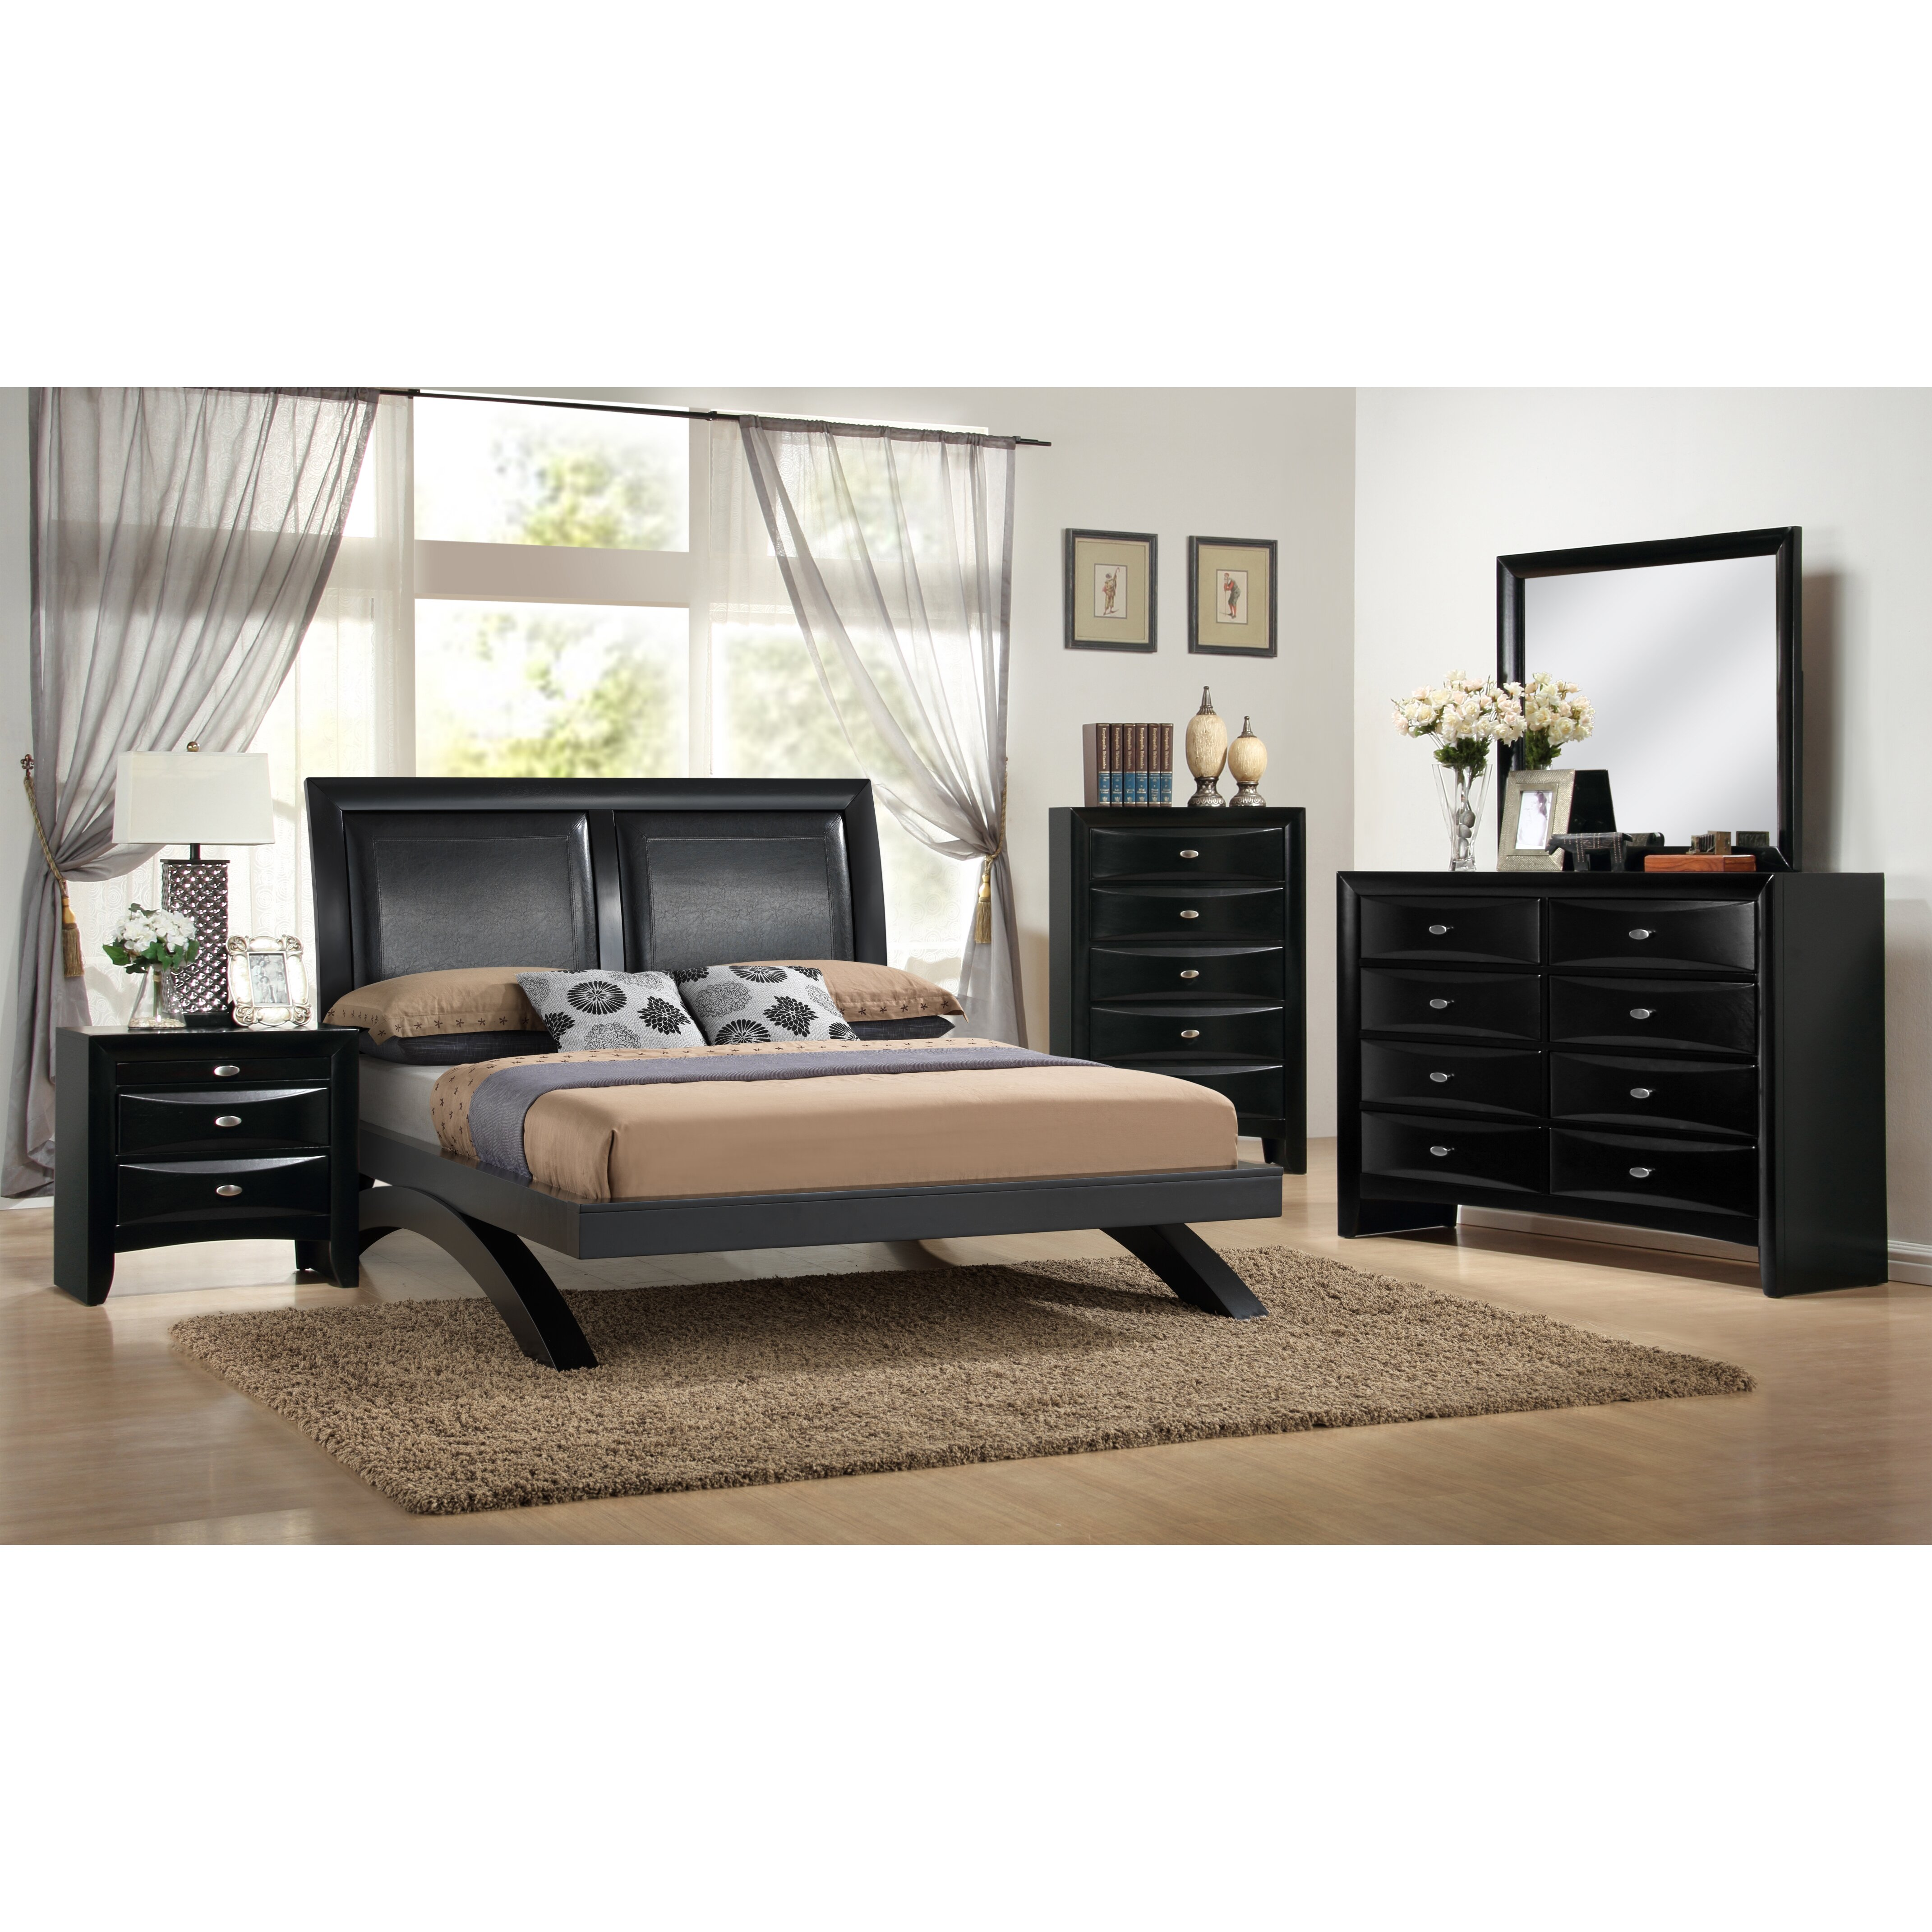 Roundhill Furniture Blemerey 5 Piece Platform Bedroom Set Reviews